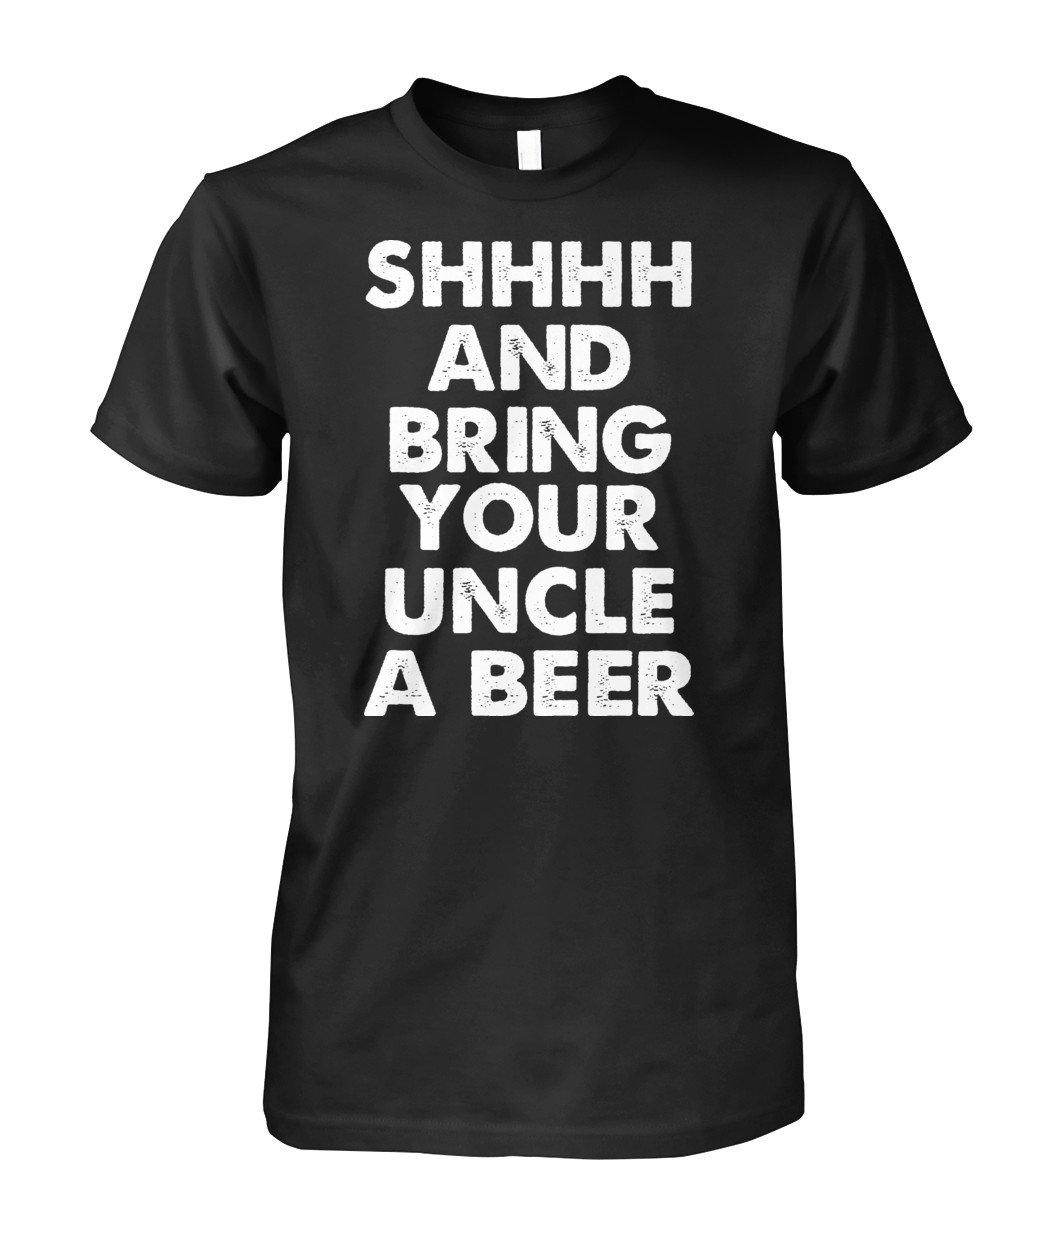 Shhh and bring your uncle a beer shirt